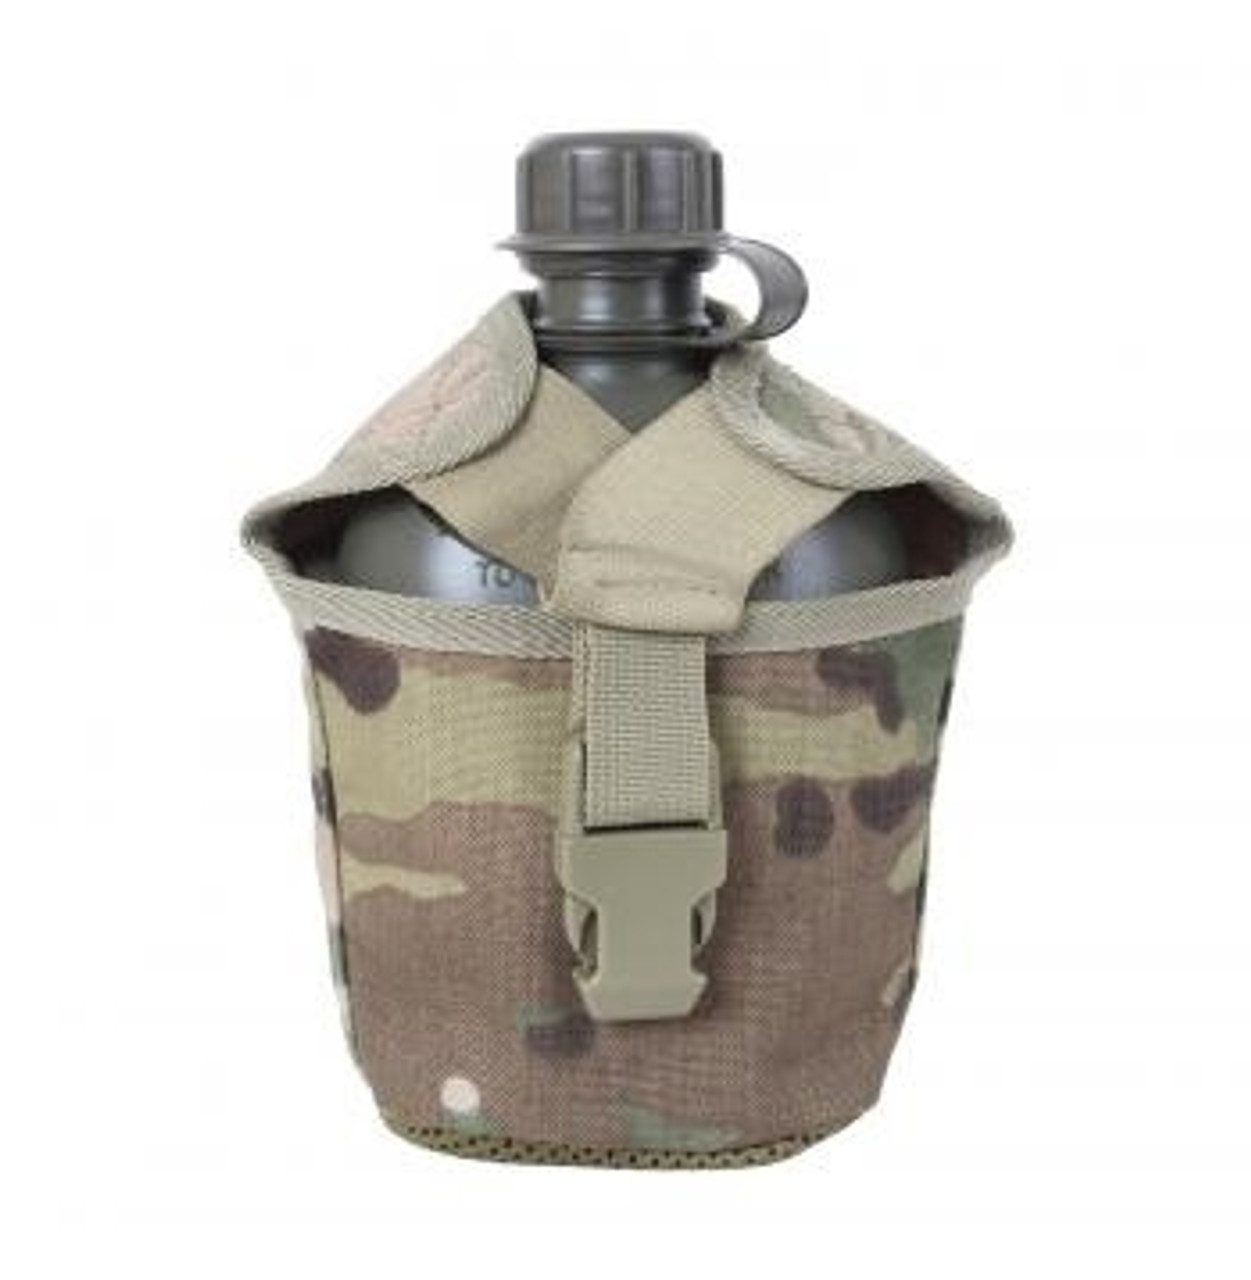 MOLLE pouch for the 1 Quart canteen.  MultiCam camouflage.